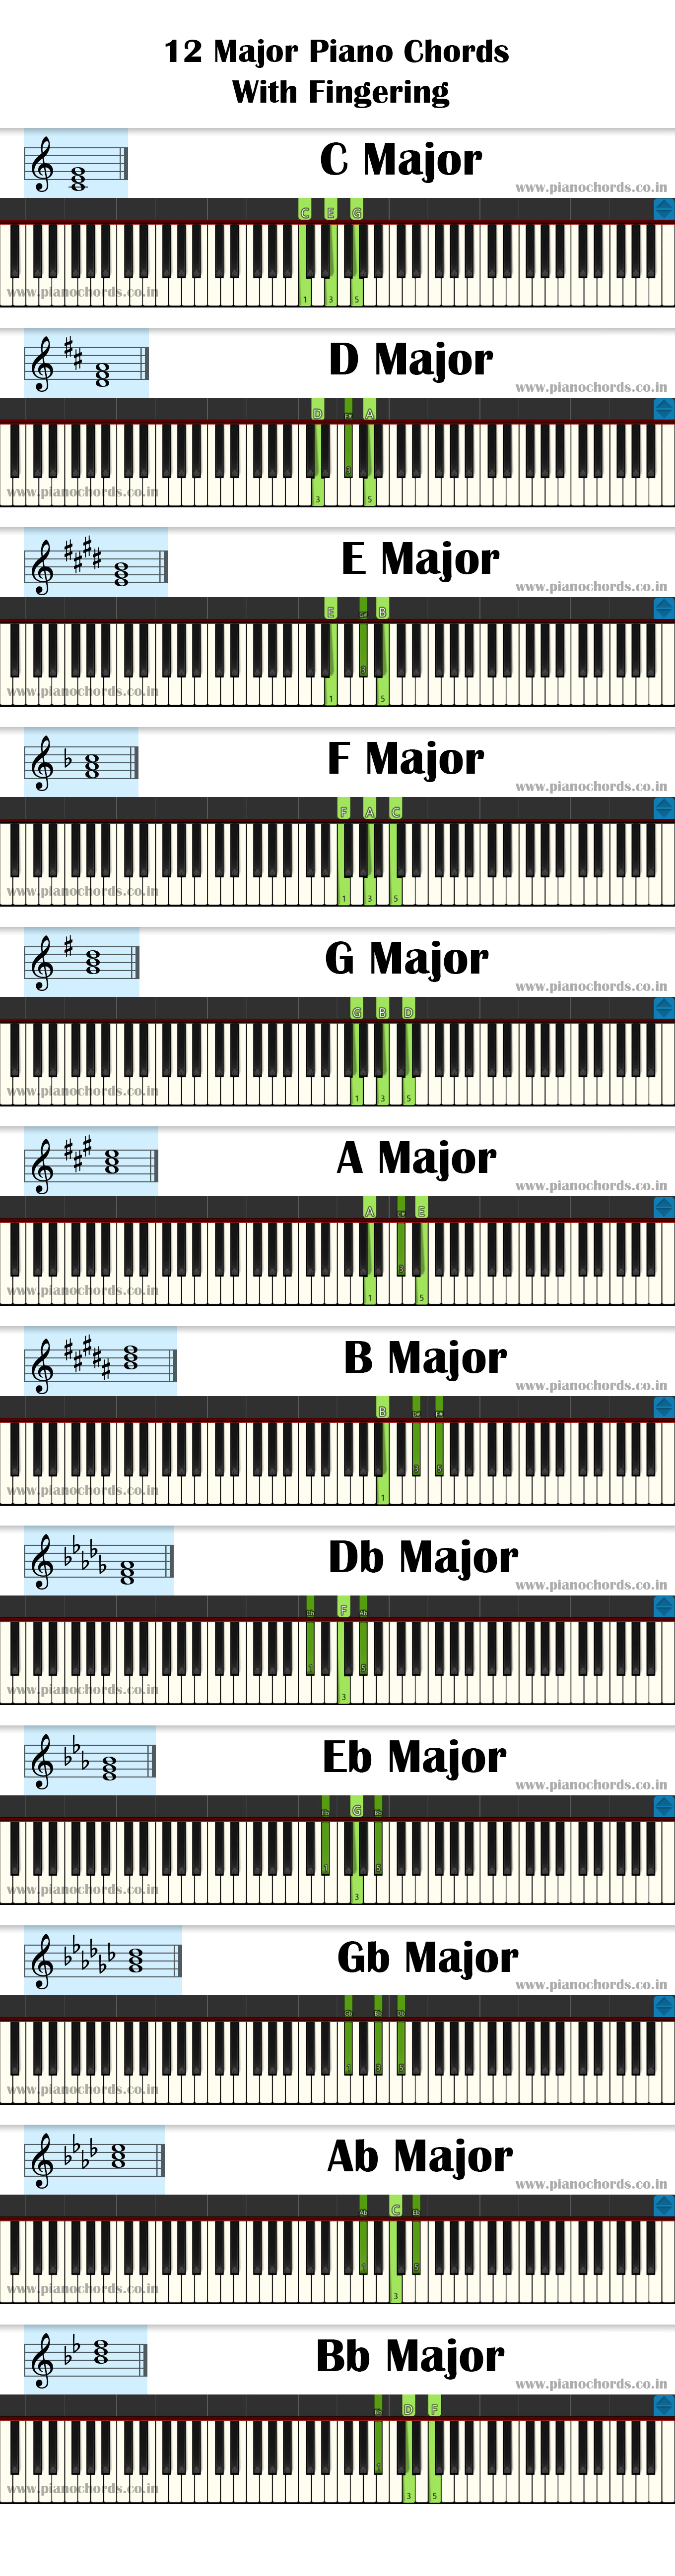 12 Major Piano Chords With Fingering - Diagram - Staff Notation